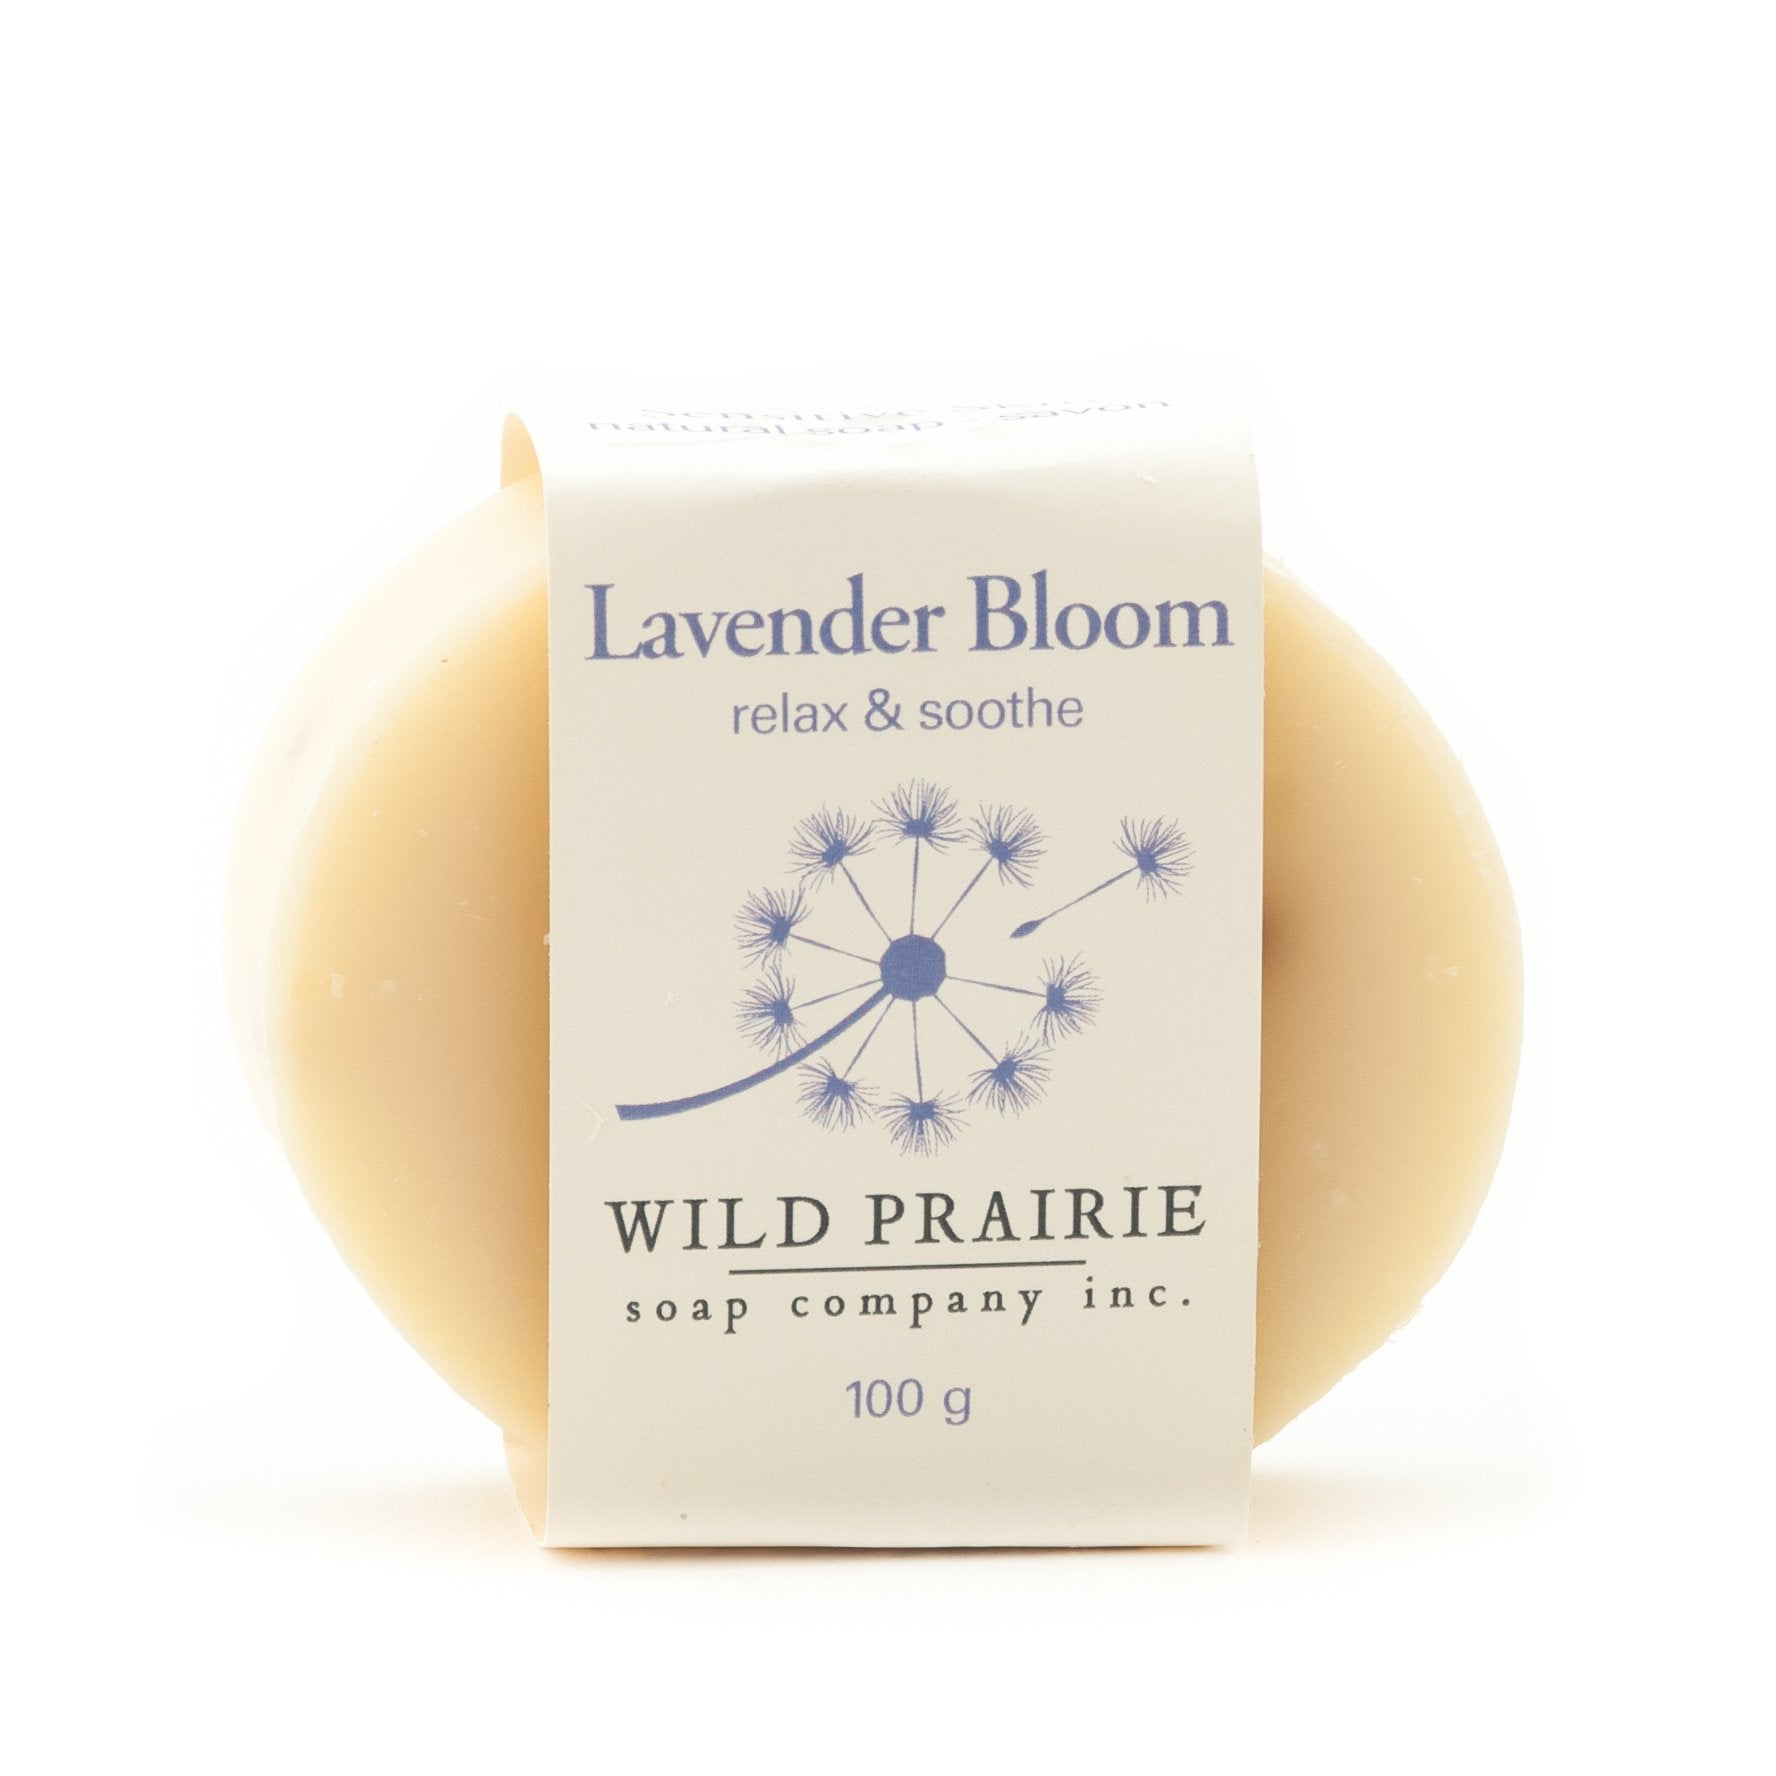 Made in Canada natural handmade Lavender soap.